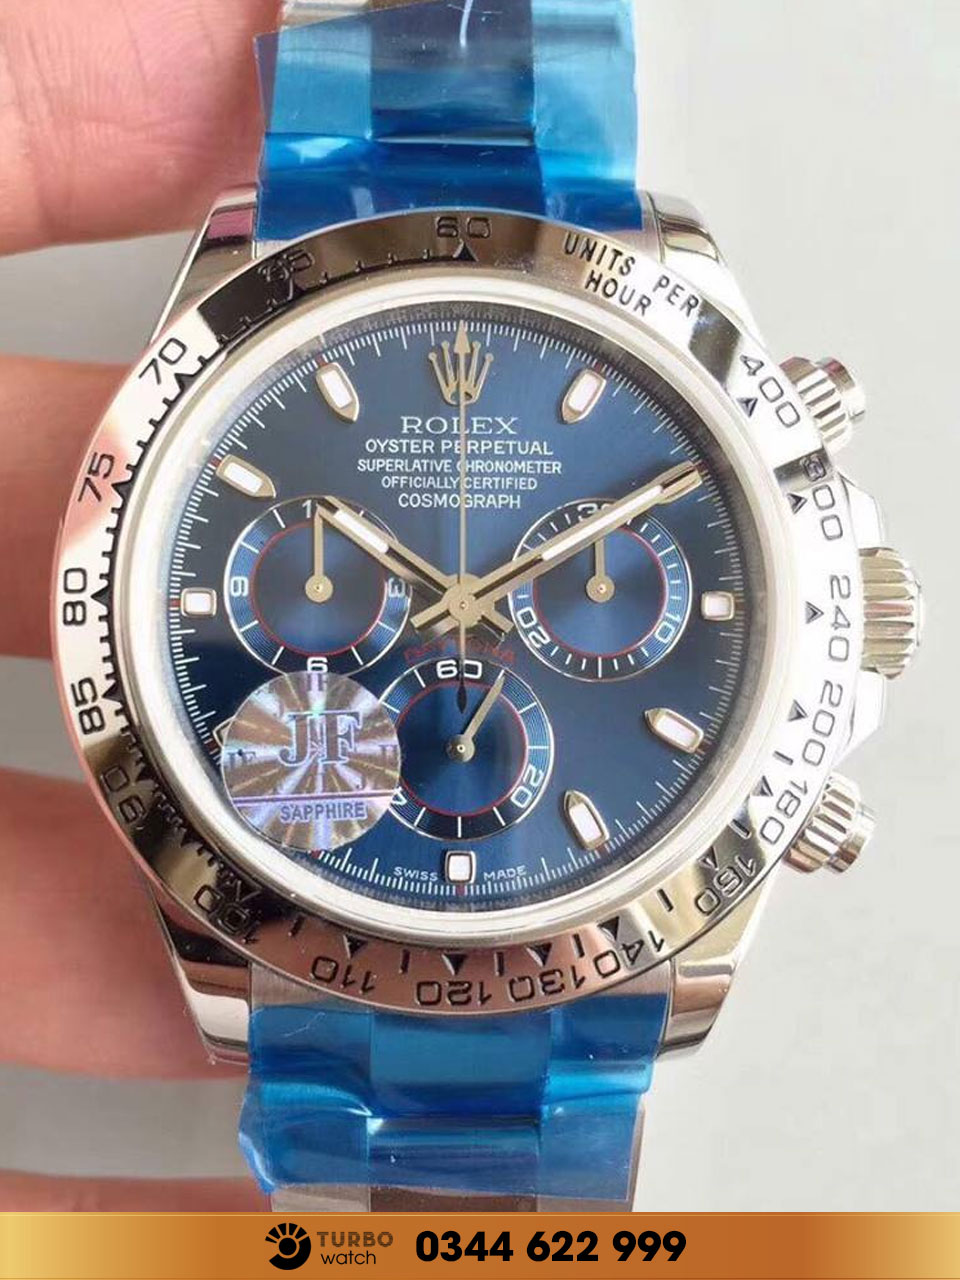 Rolex Daytona Oyster Perpetual Cosmograph Marker Blue fake 1-1 siêu cấp